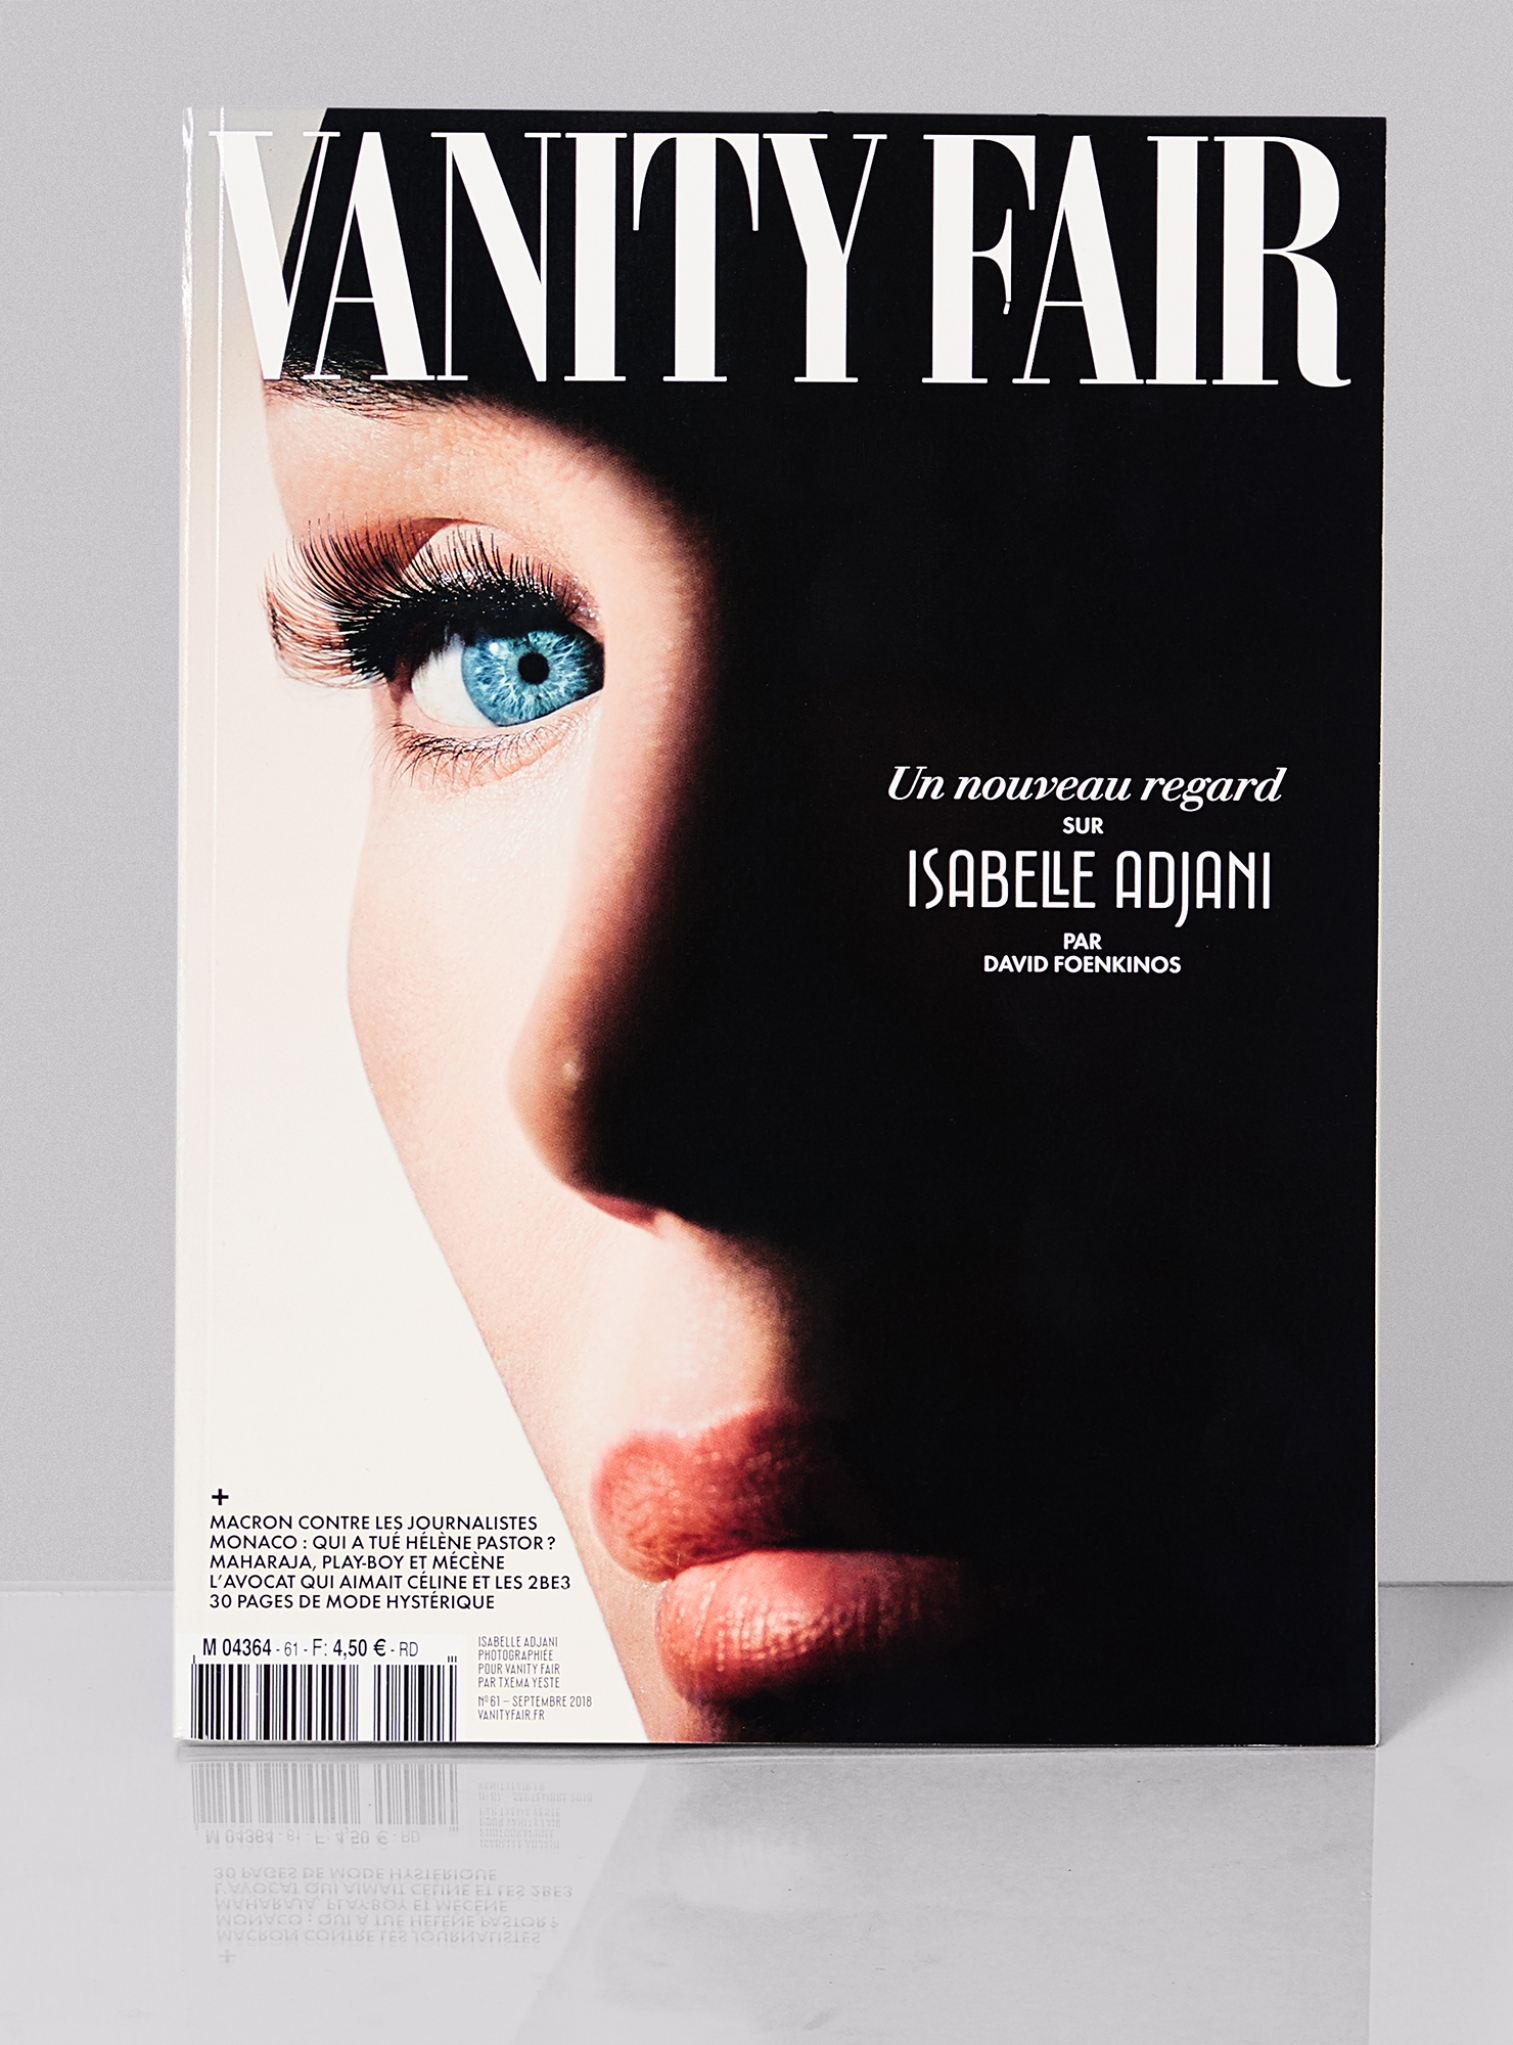 vanity fair france magazine launch and art direction